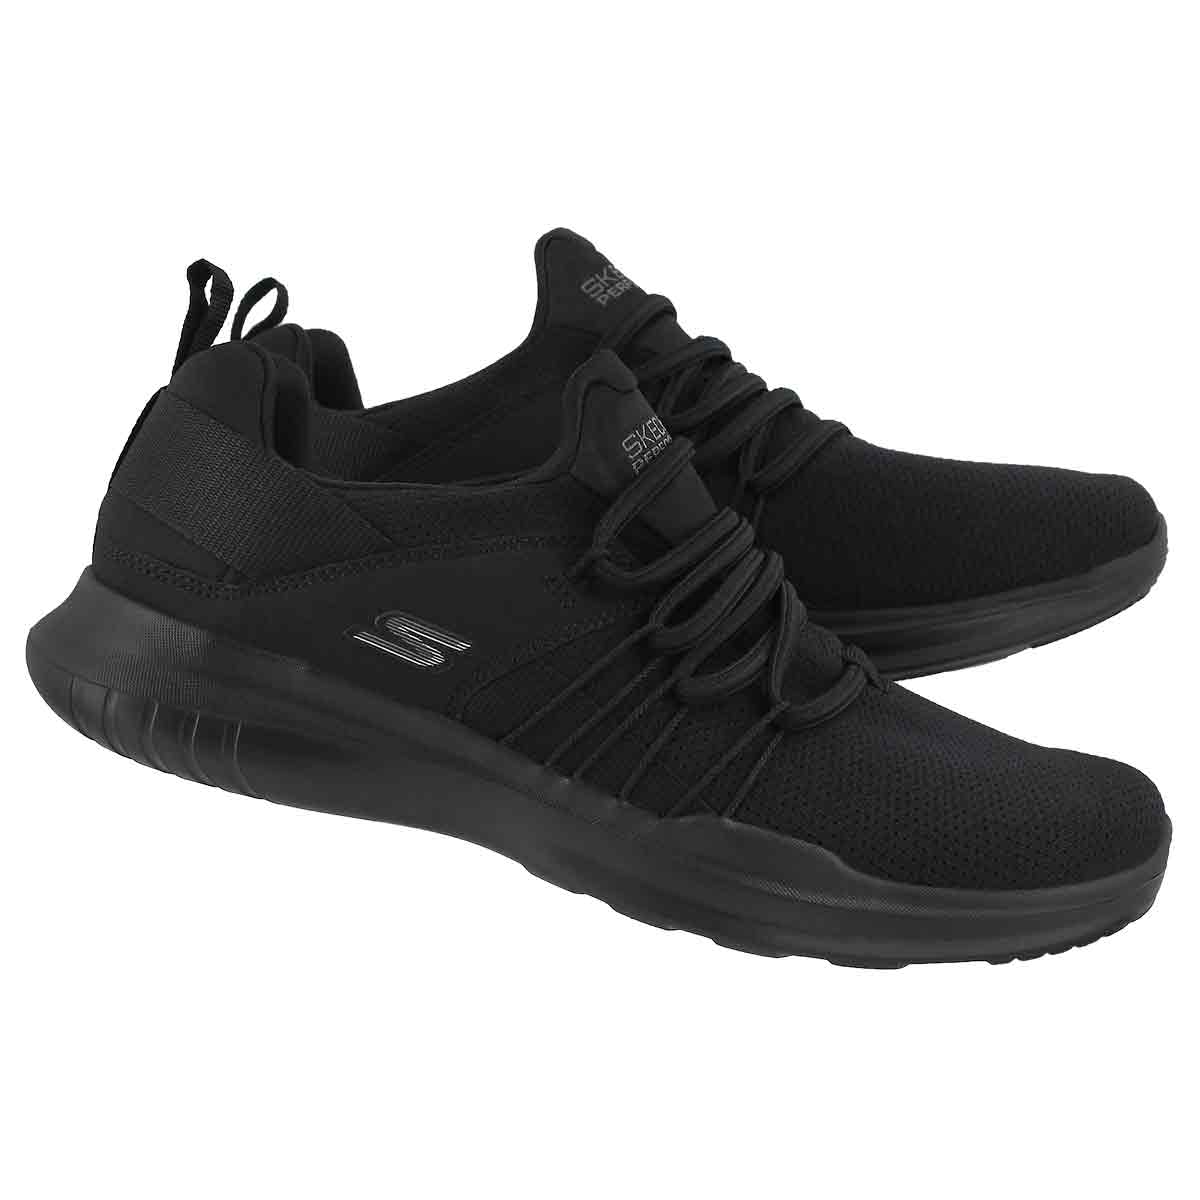 Lds Go Run Mojo black slip on sneaker